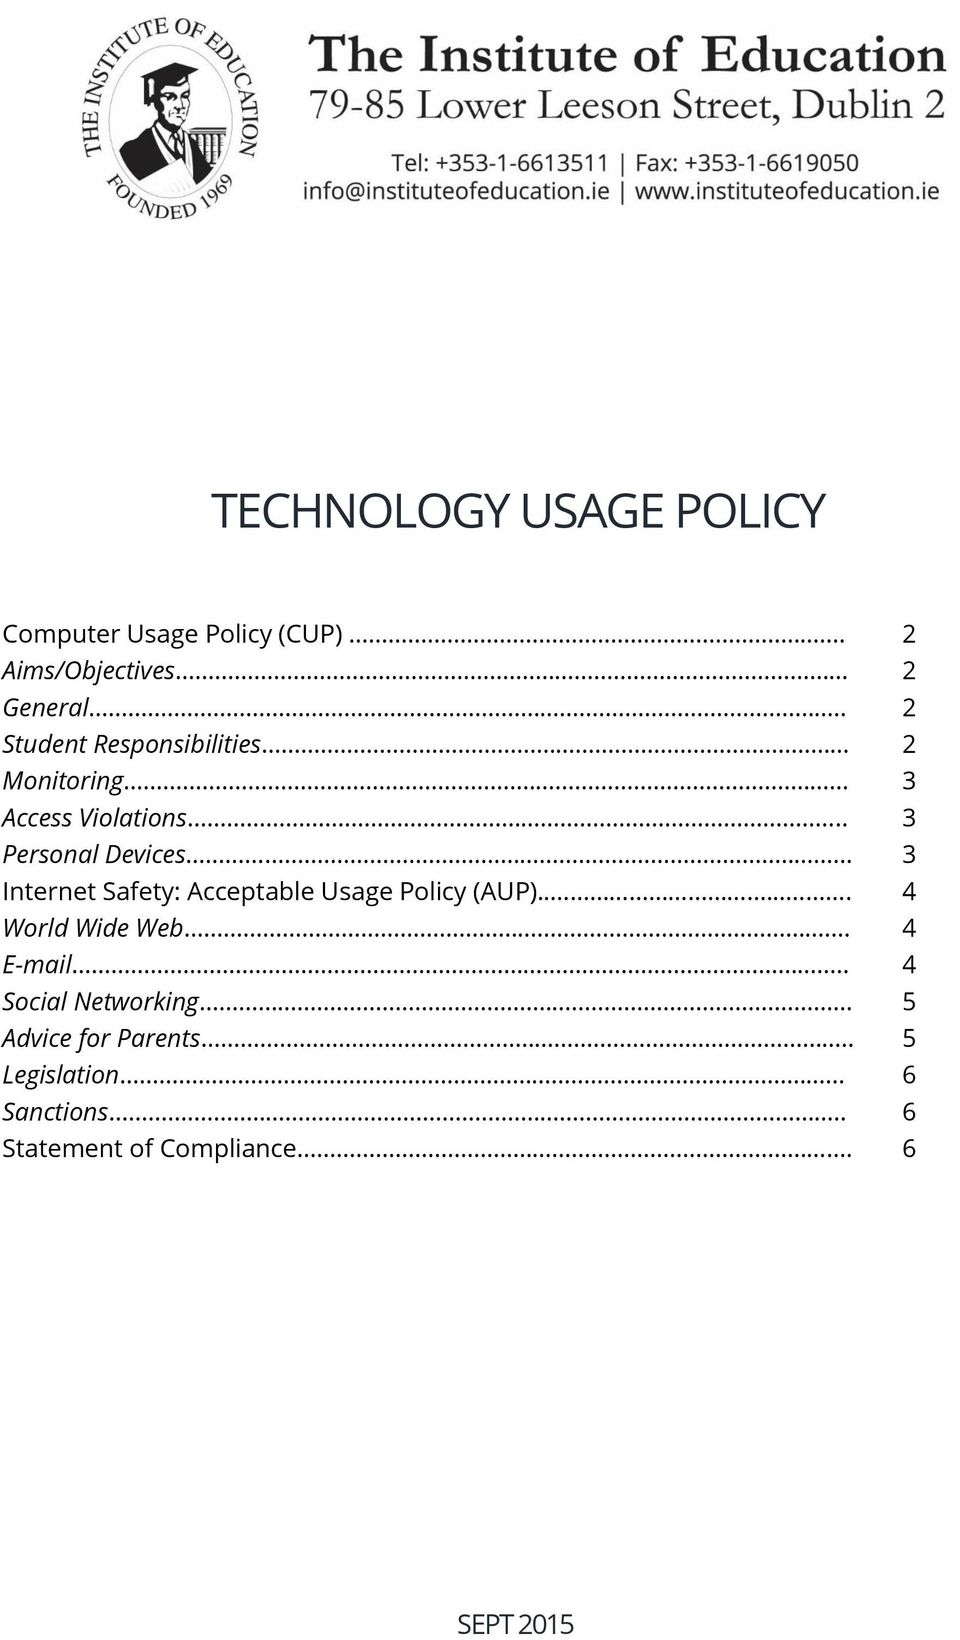 .. 3 Personal Devices 3 Internet Safety: Acceptable Usage Policy (AUP)..... 4 World Wide Web.